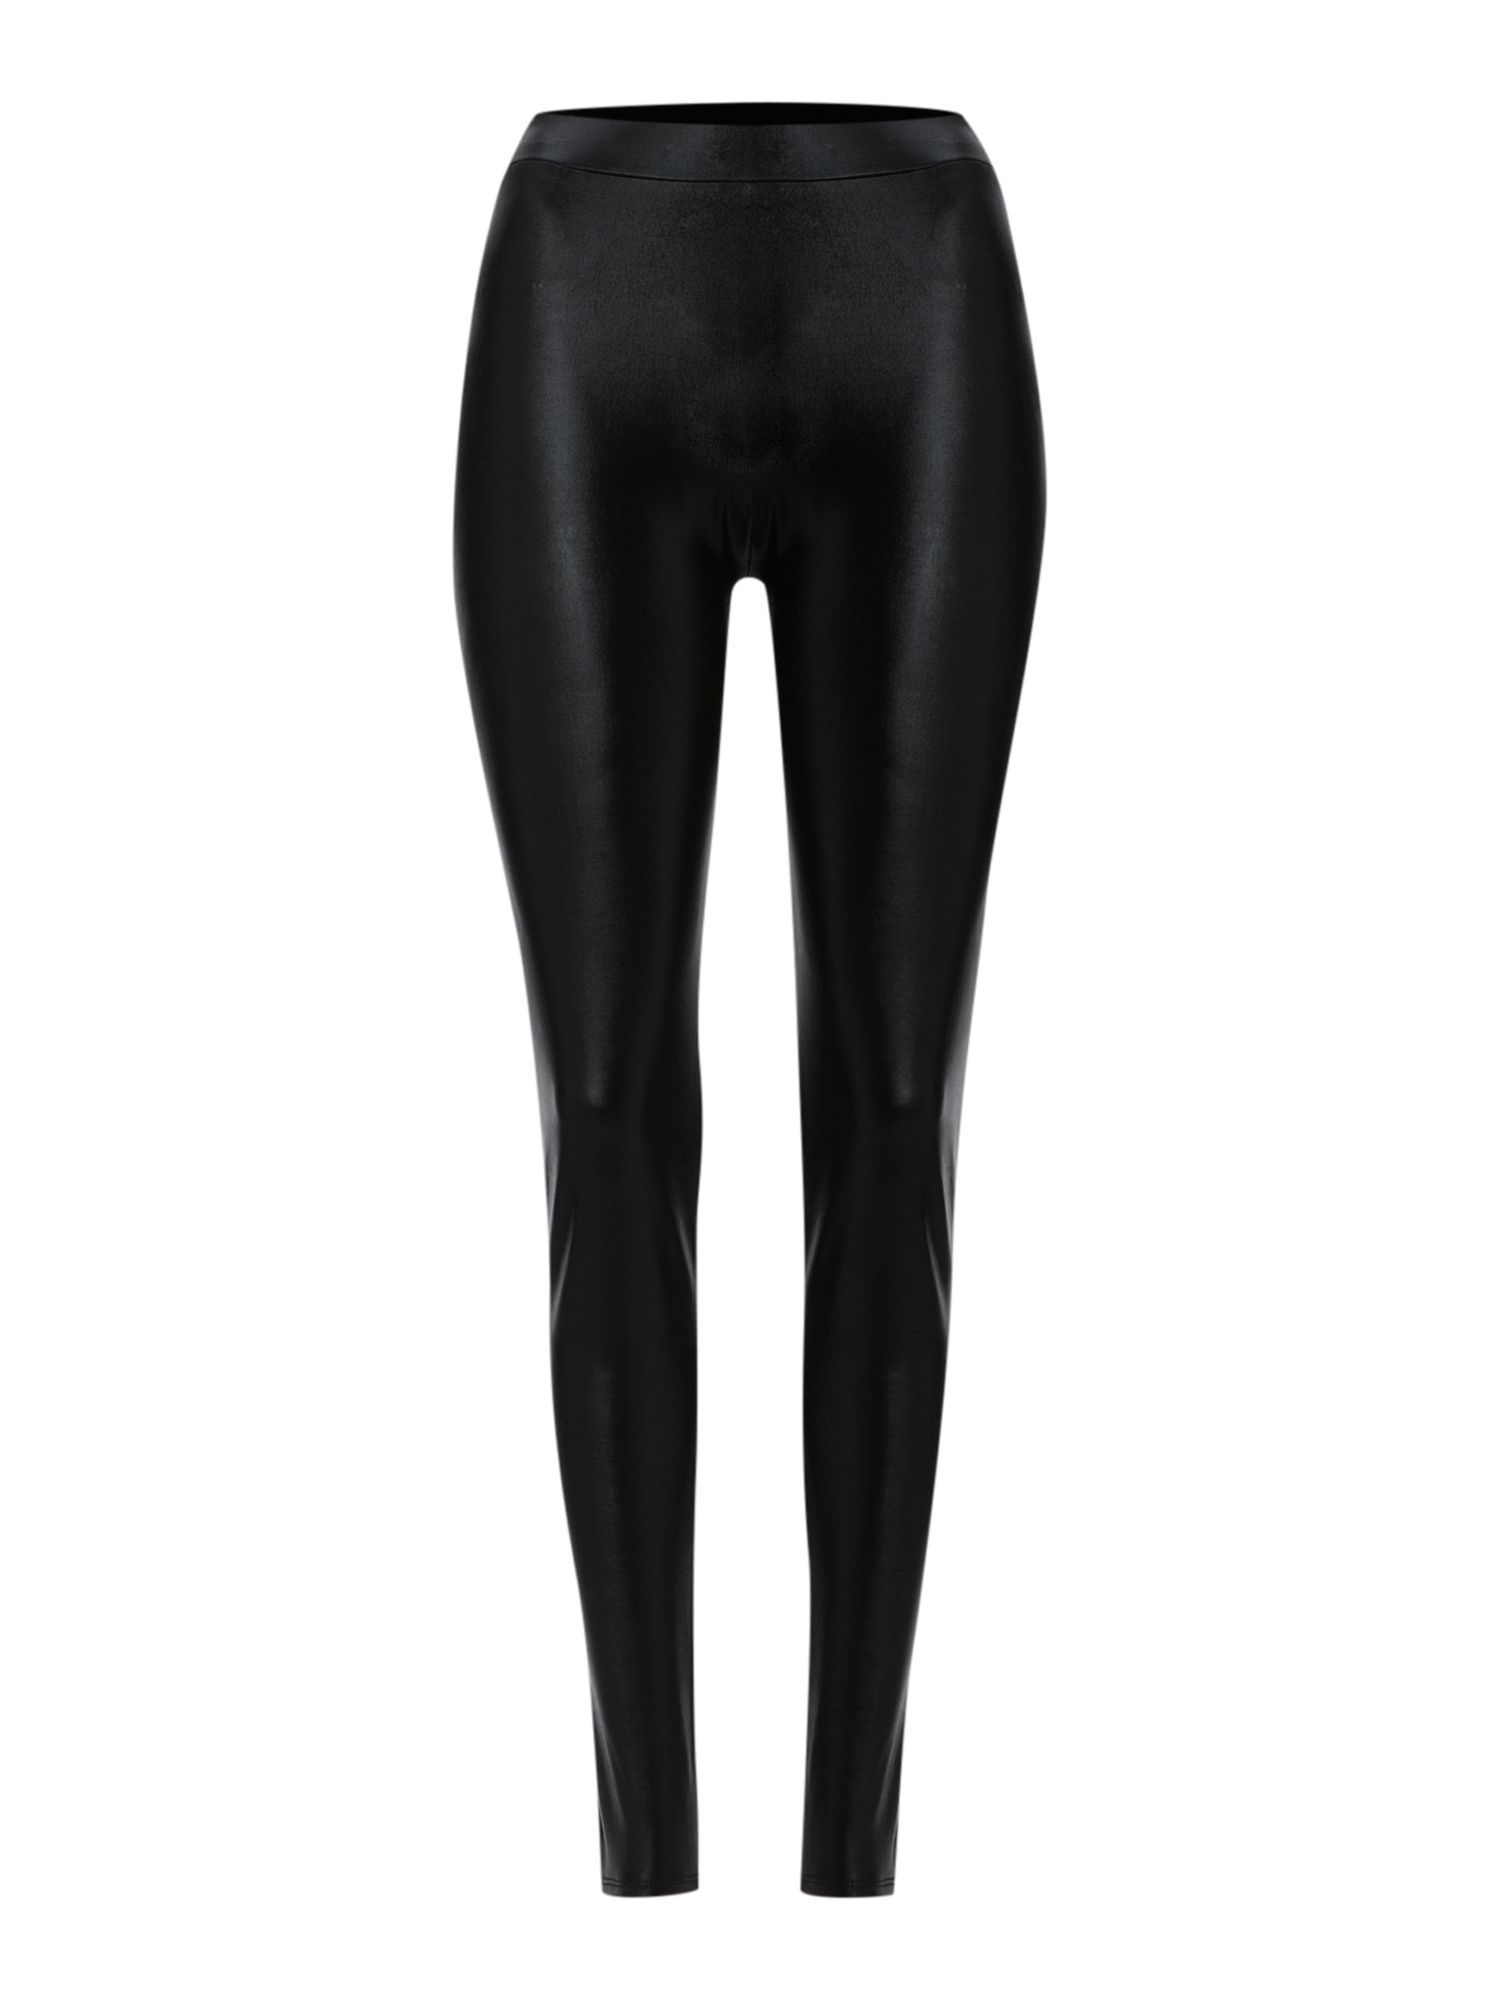 High shine wet look legging